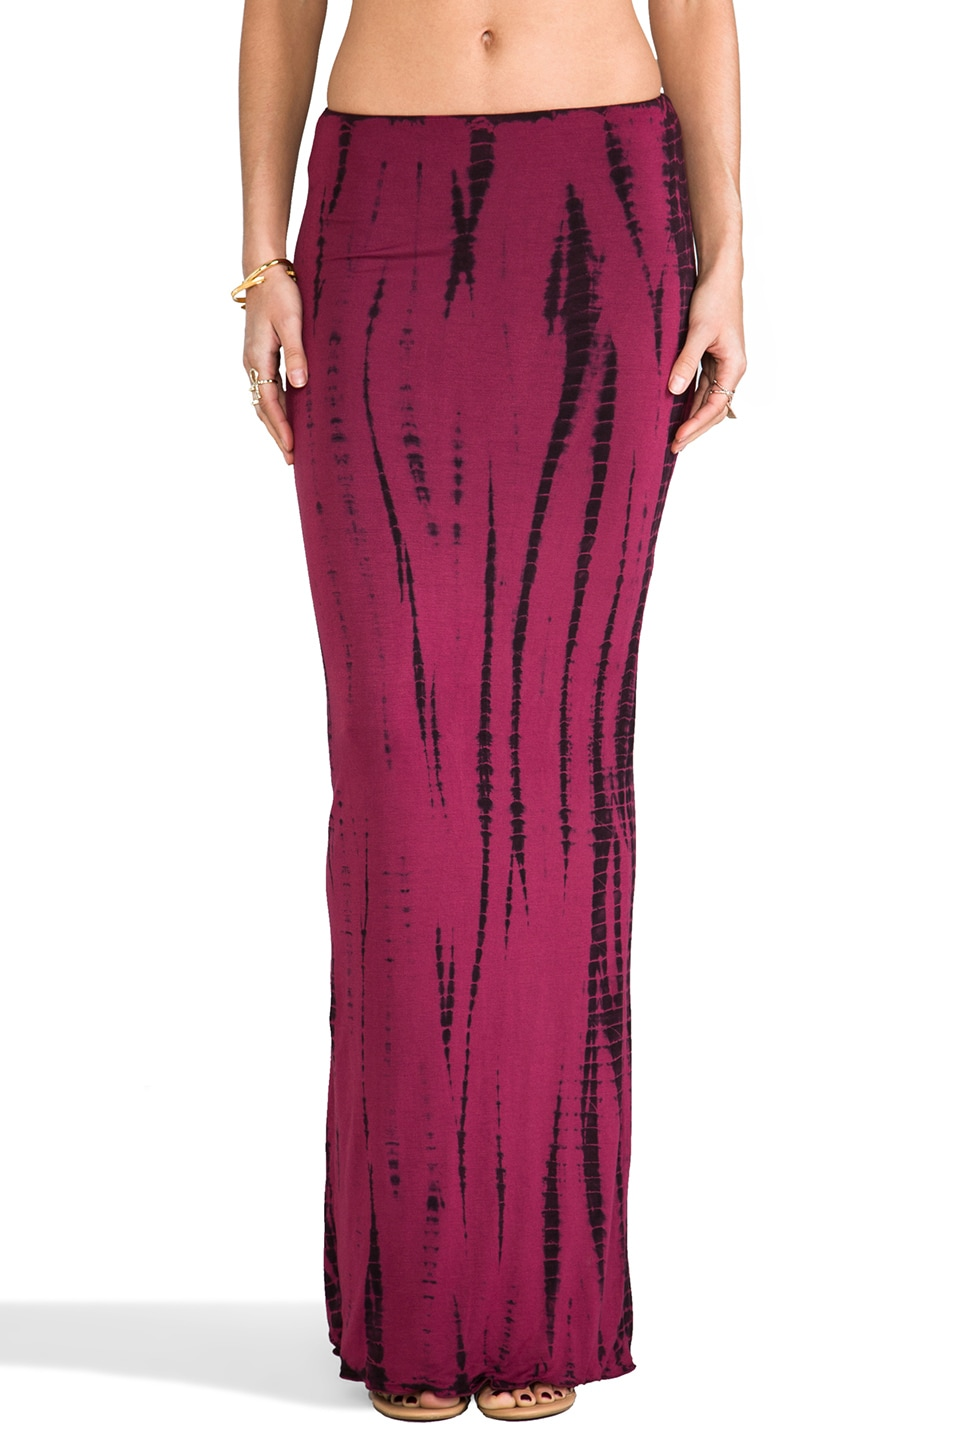 Indah Montana Maxi Tube Skirt in Streak Red